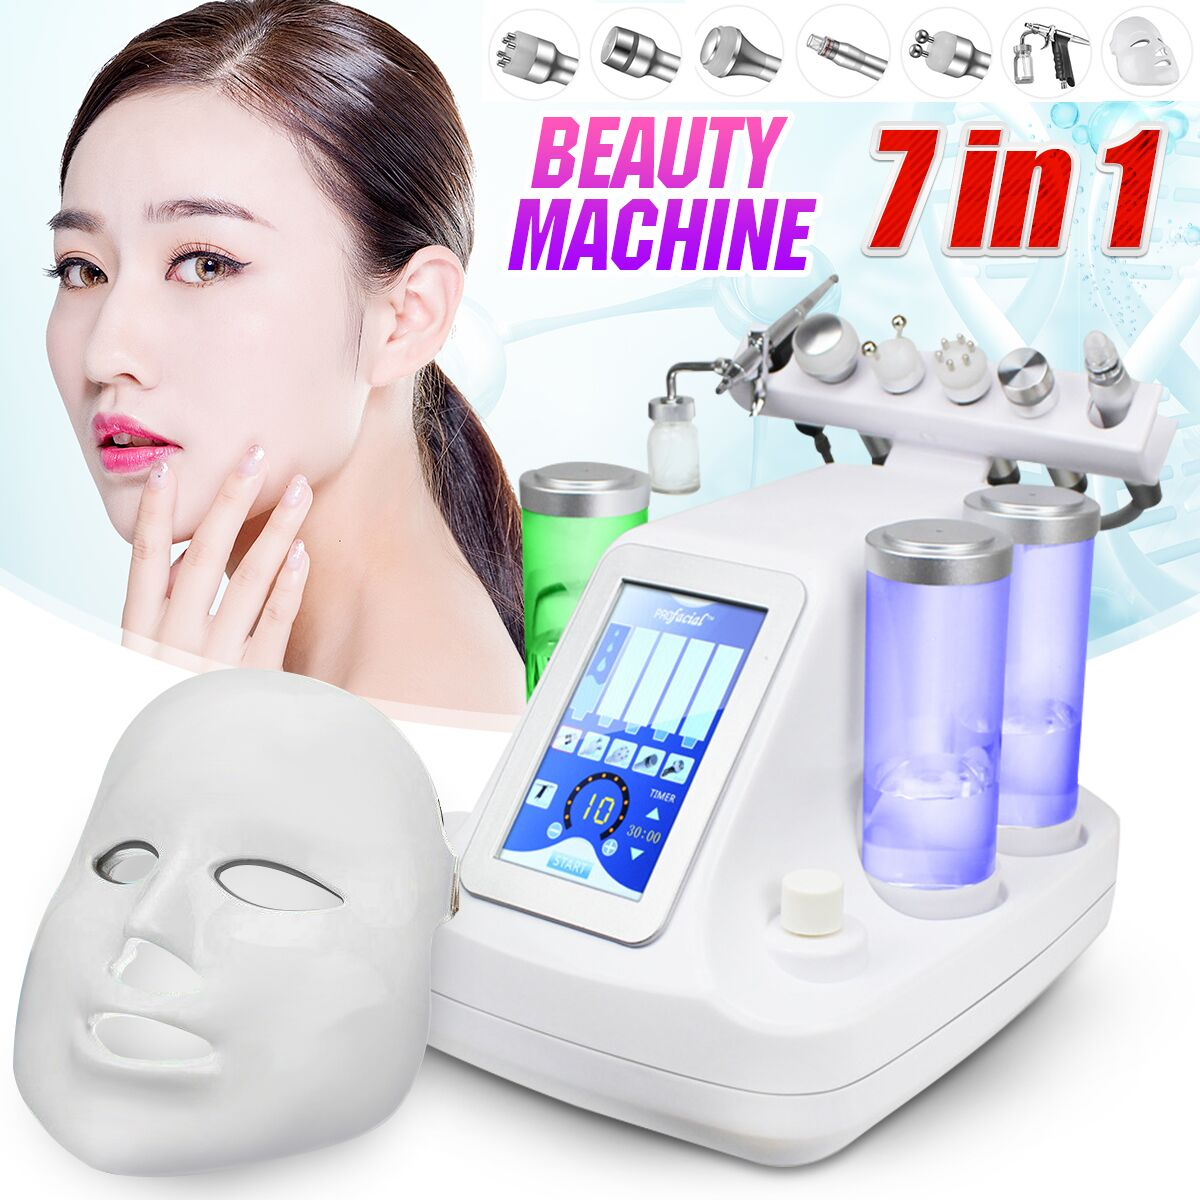 7 In 1 Hydra Dermabrasion Peeling Vacuum Cleaning Machine RF Water Oxygen Jet Spa Facial Skin Bio-lifting Beauty Peel Machine